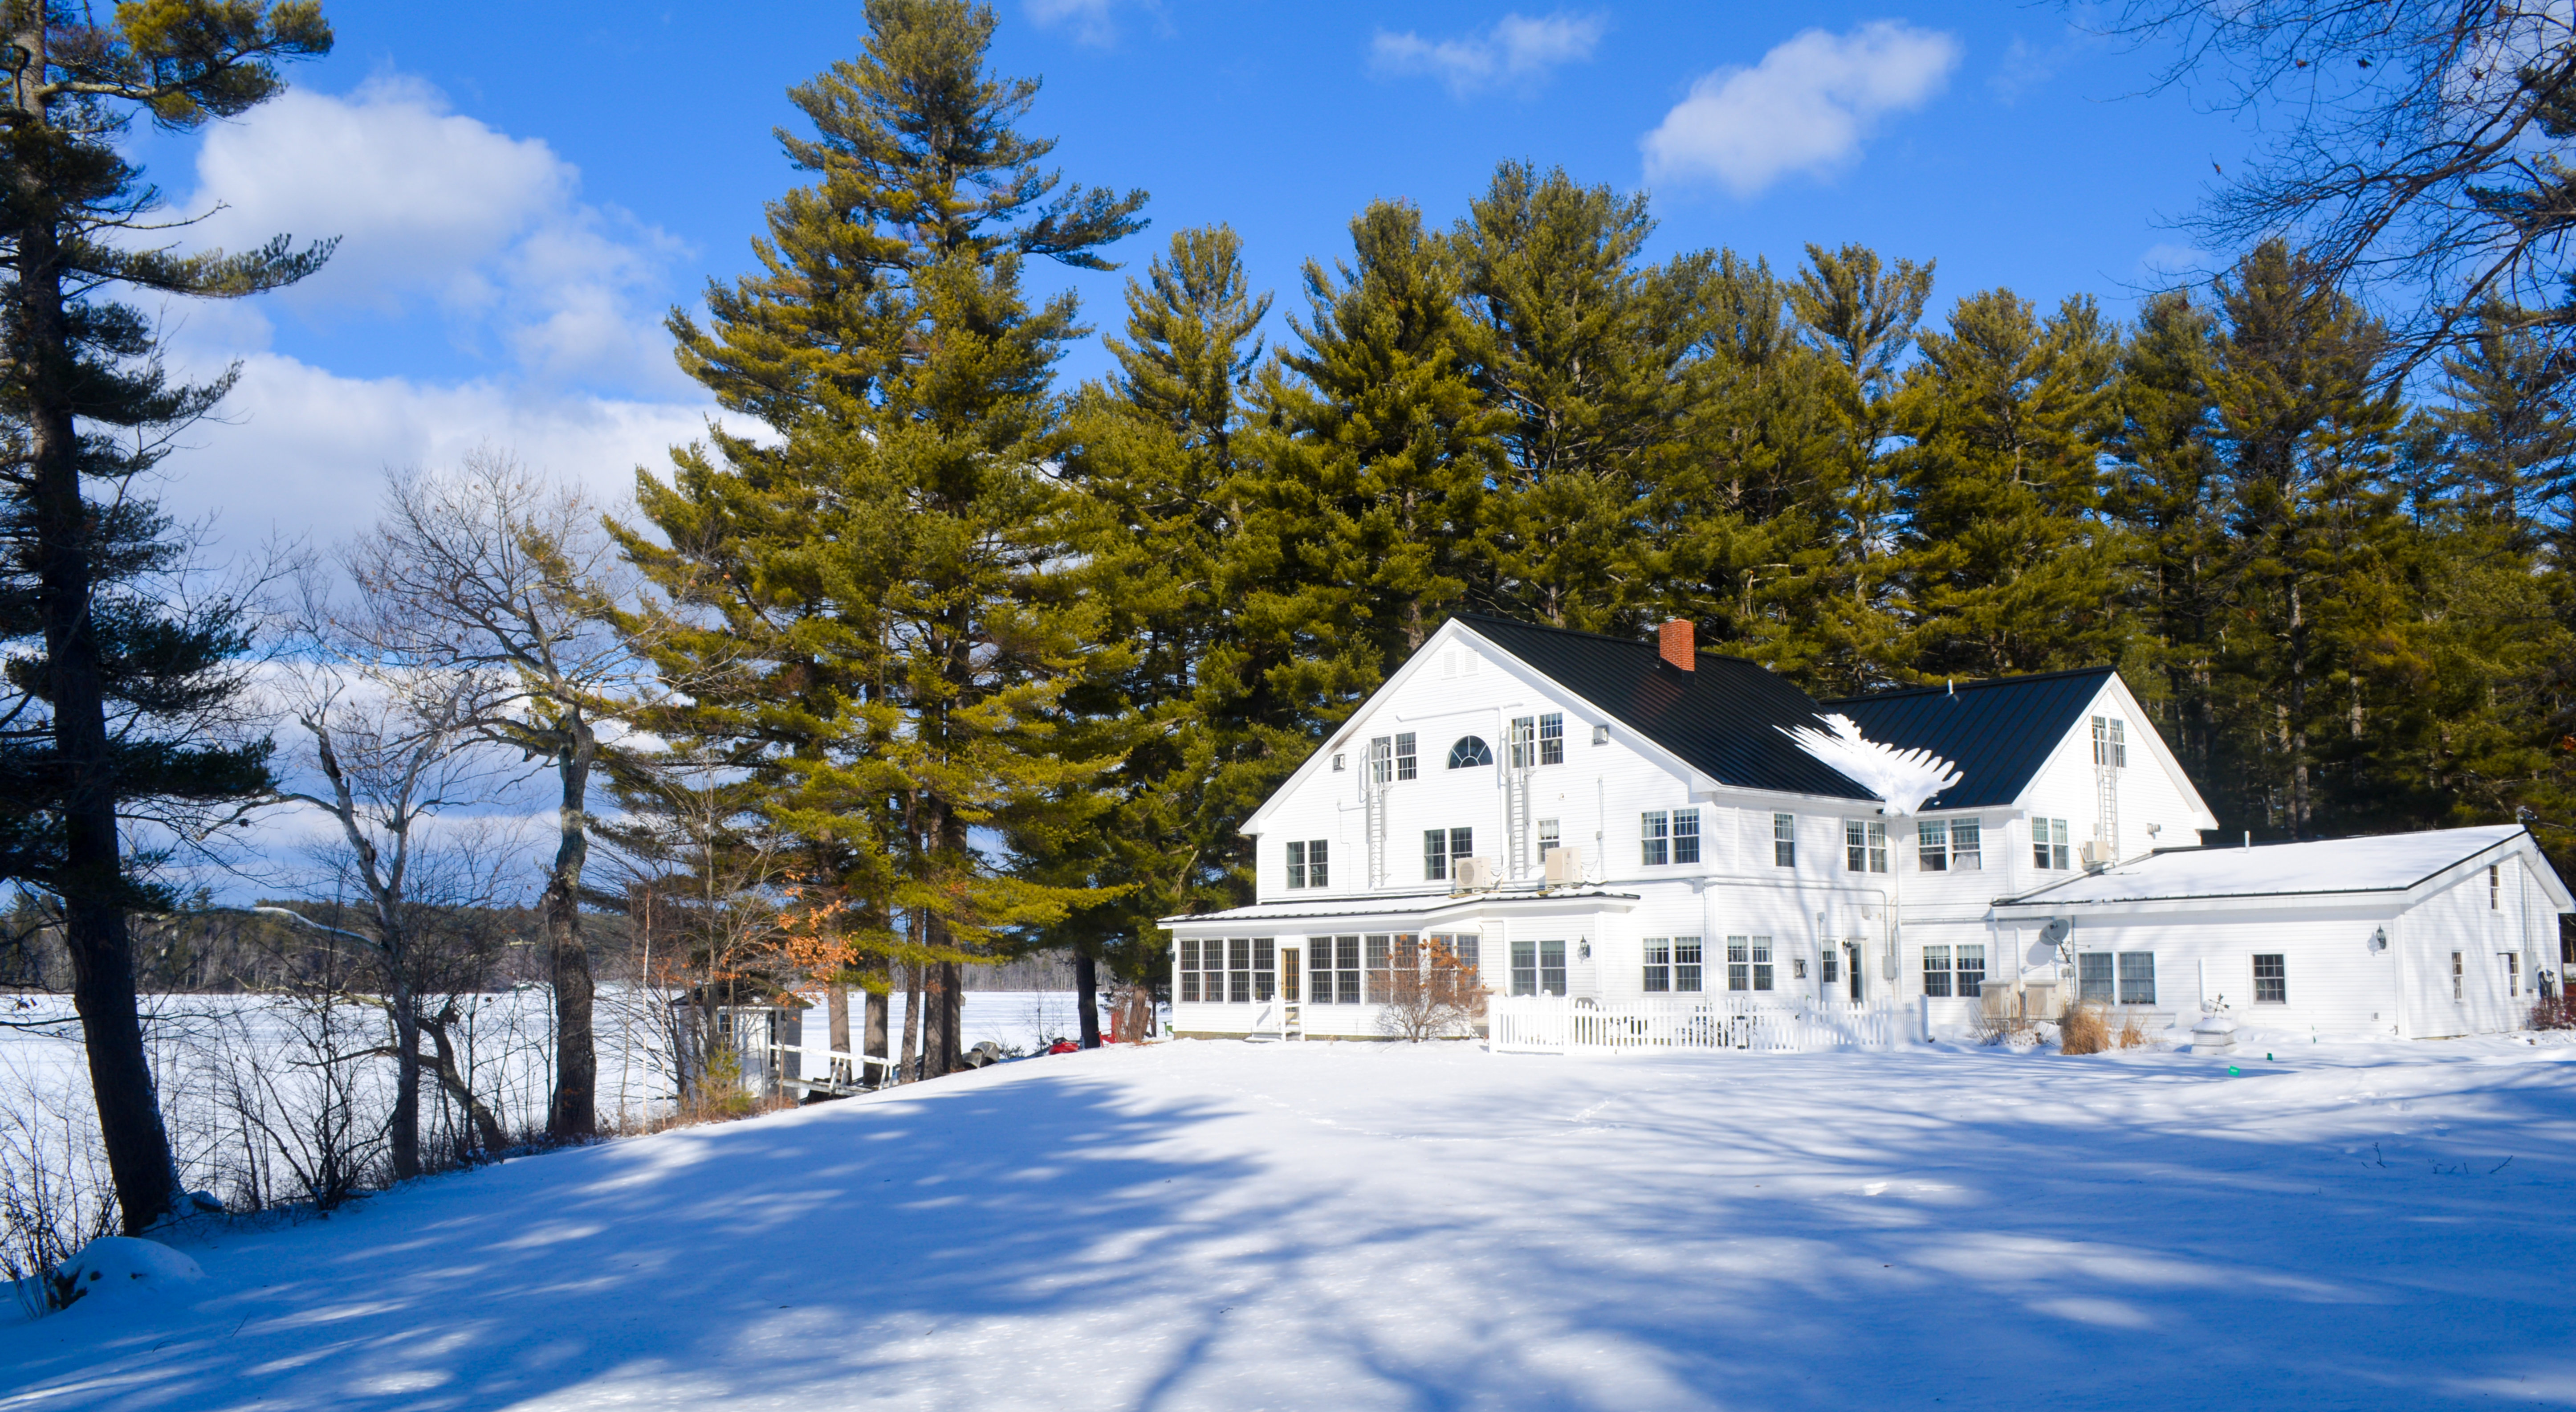 A house covered in snow at Wolf Cove Inn.